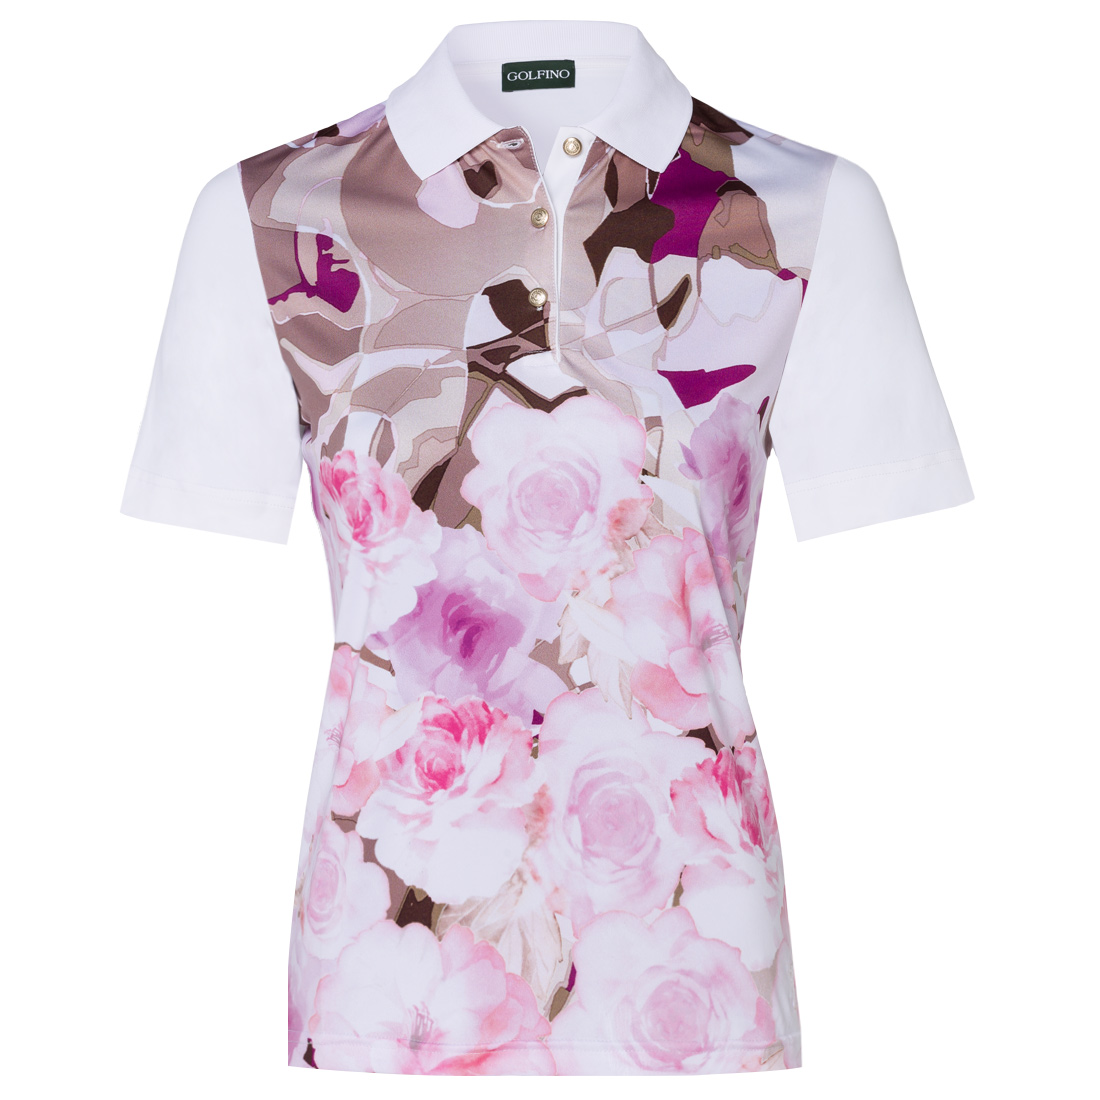 Ladies' flower pattern polo